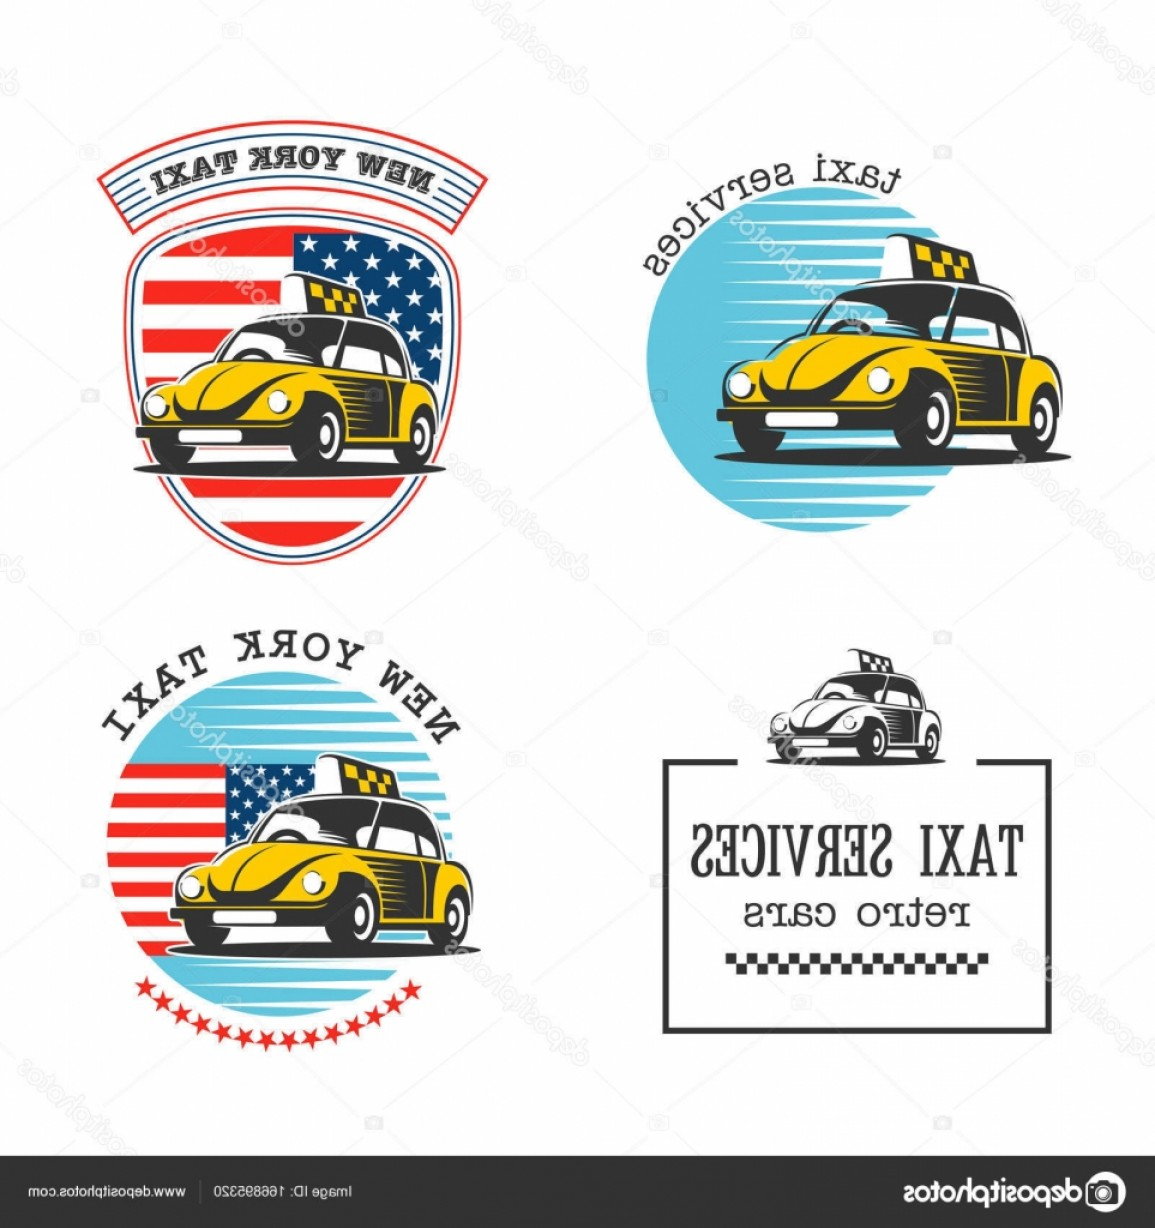 New York Taxi Cab Vector: Stock Illustration Taxi In New York Taxi